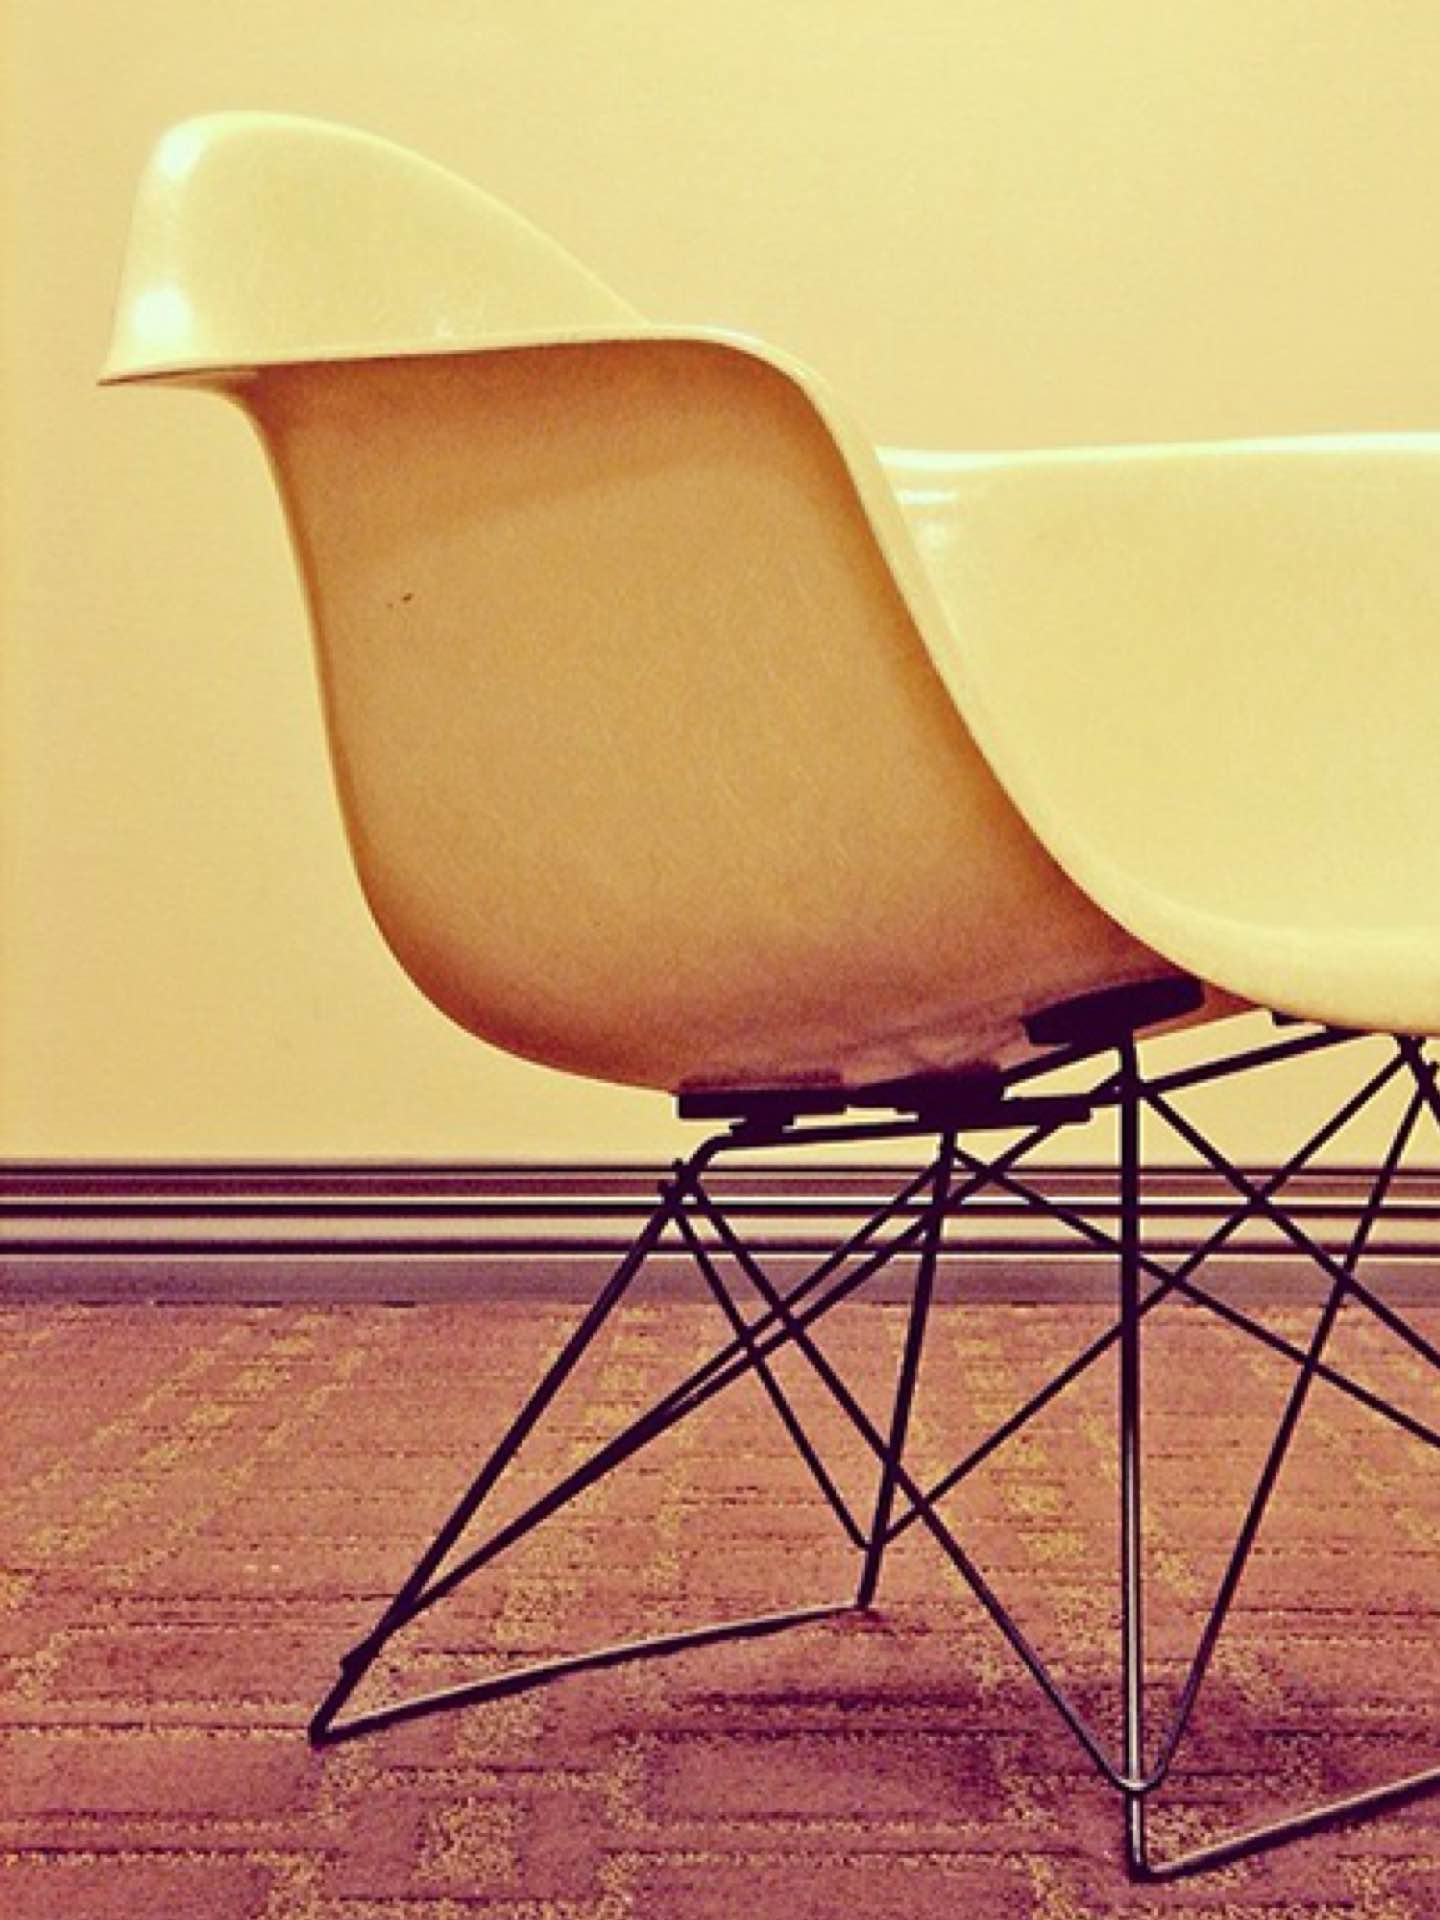 Today's #shellspotting story comes from Tim Smith (@thsnyc), who submitted a photo of his impeccably preserved, vintage #Eames LAR, accompanied by the remarkable story of its provenance. As he tells us: